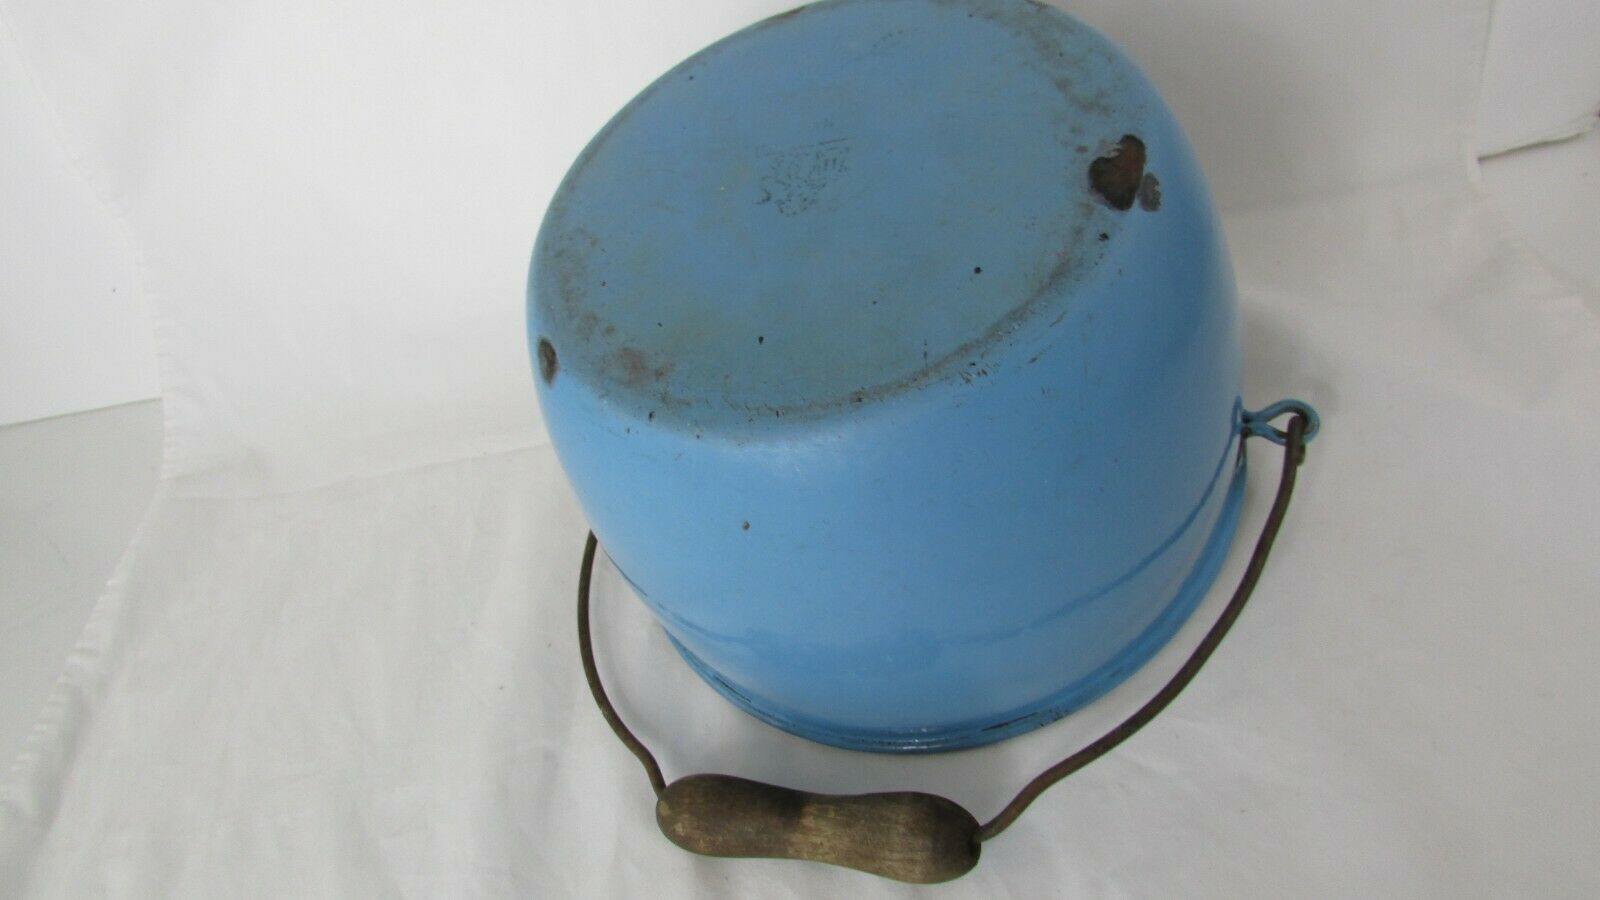 Vintage Enamel  Pail Bucket Blue and White Enamelware With Wooden Handle image 9